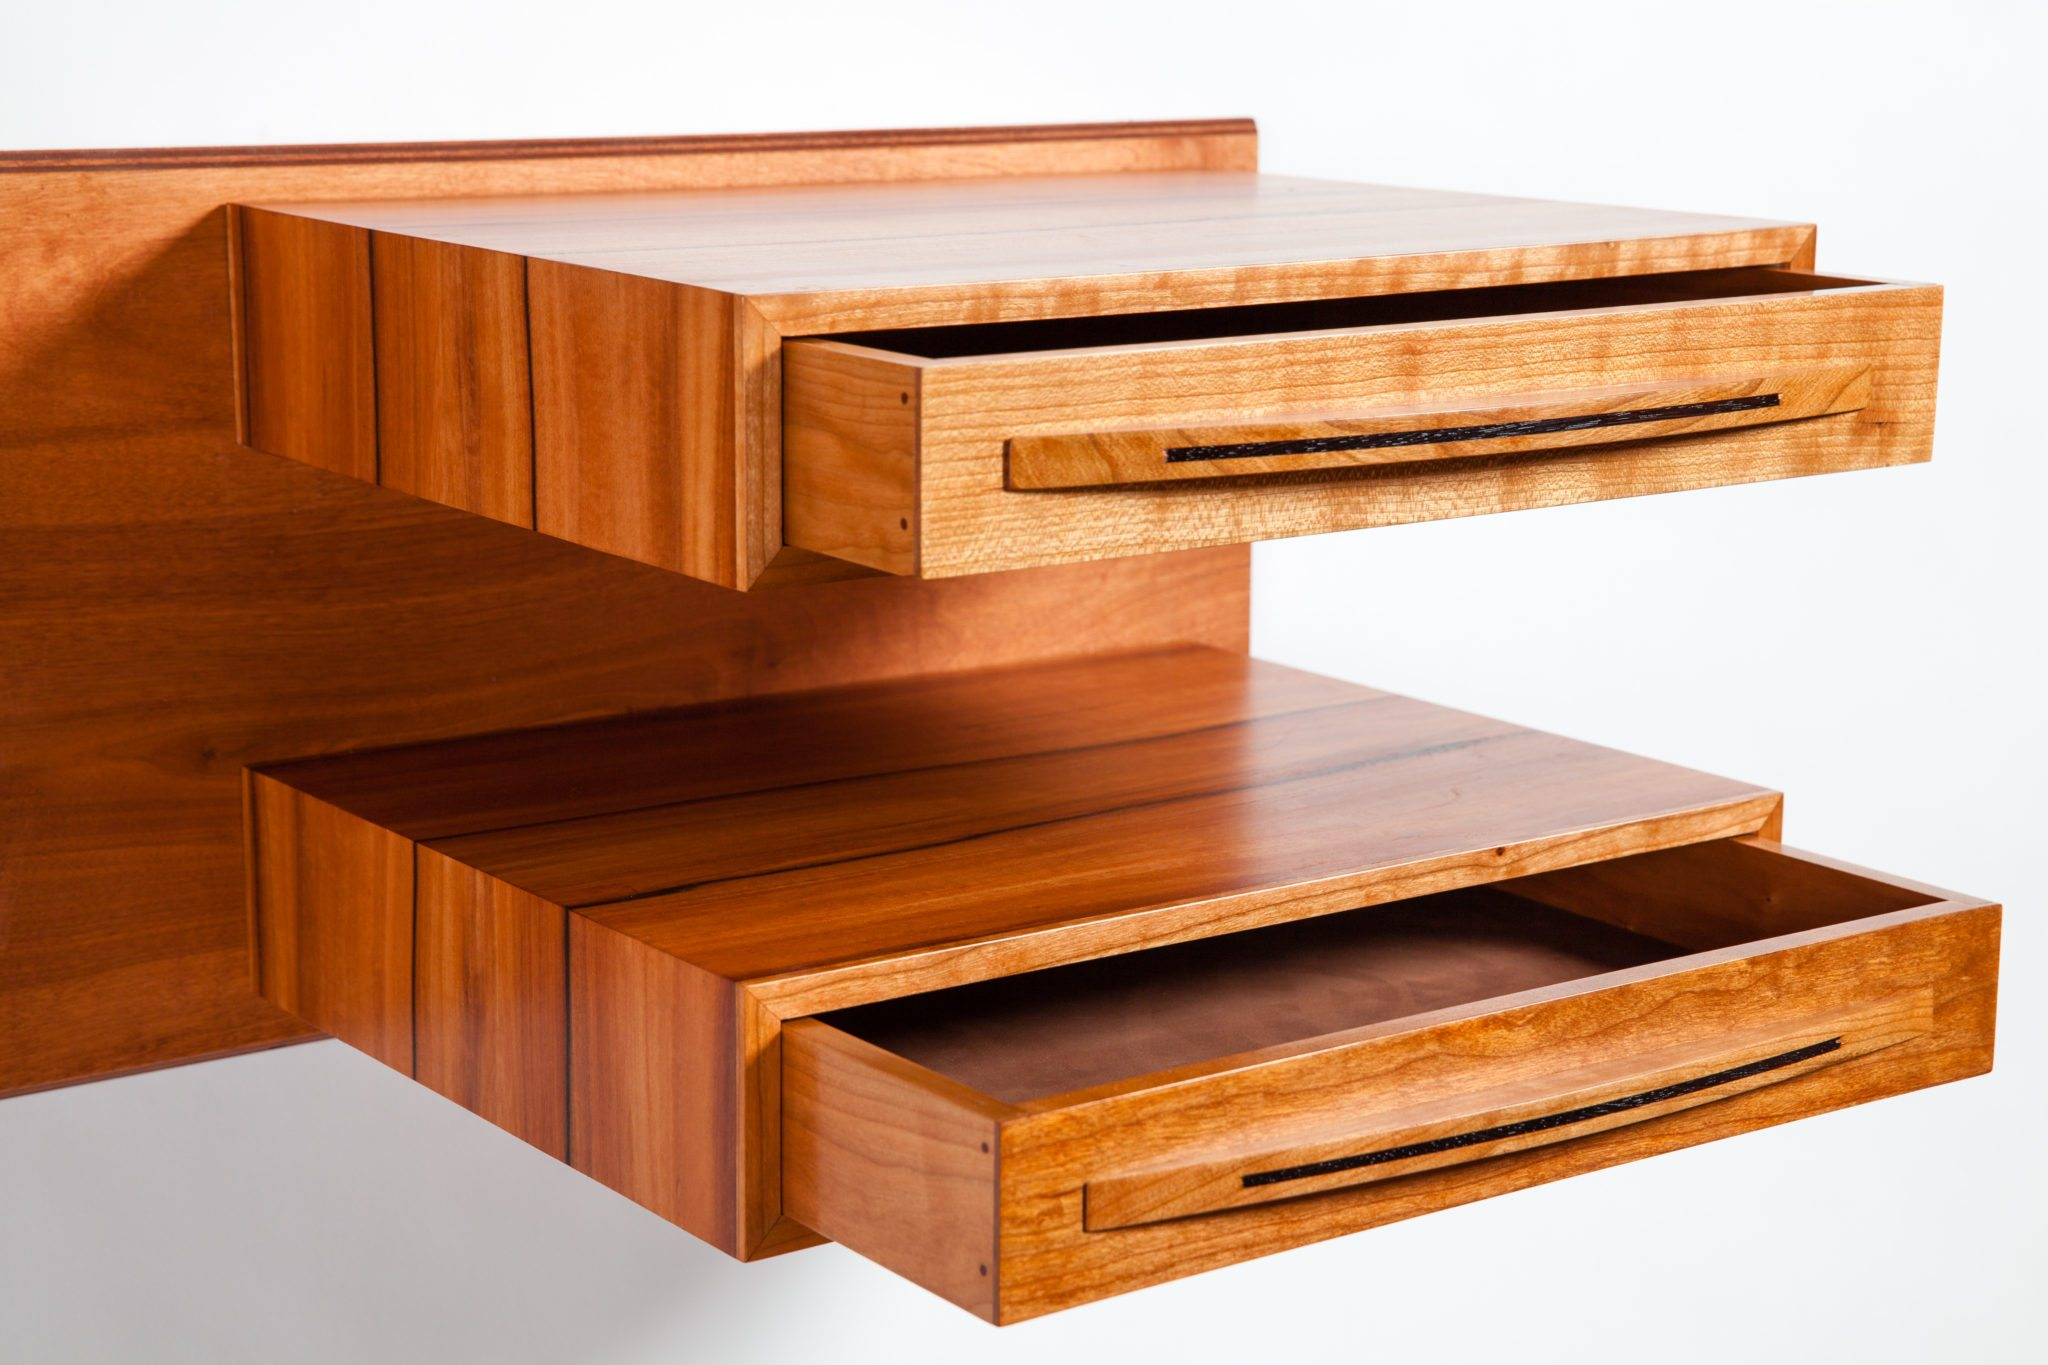 Tineo veneers | Handmade Wood Furniture | STUDIORossi